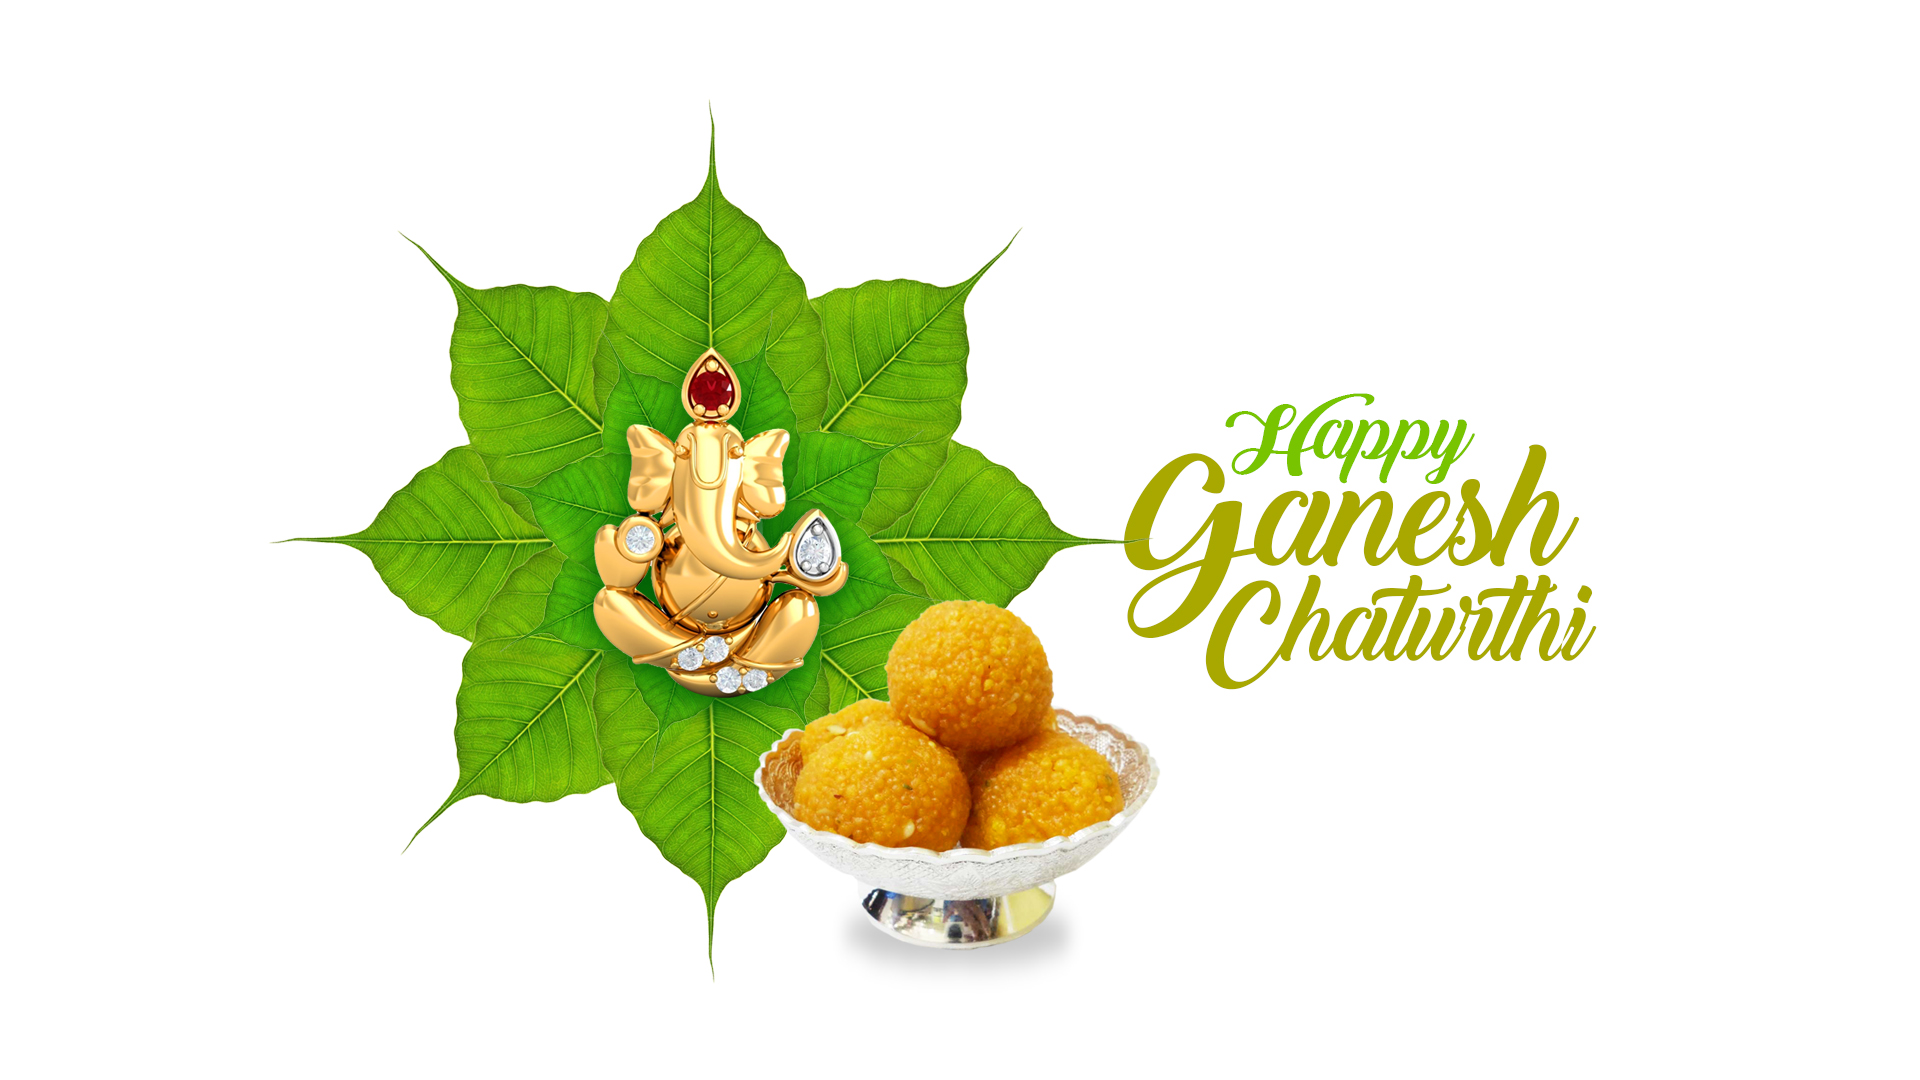 Ganesh-Chaturthi-Greeting-Card-Vinayak-Chaturthi-Greeting-Card, Vinayak Chaturthi Greeting Card, Ganesh Chaturthi Greeting Card